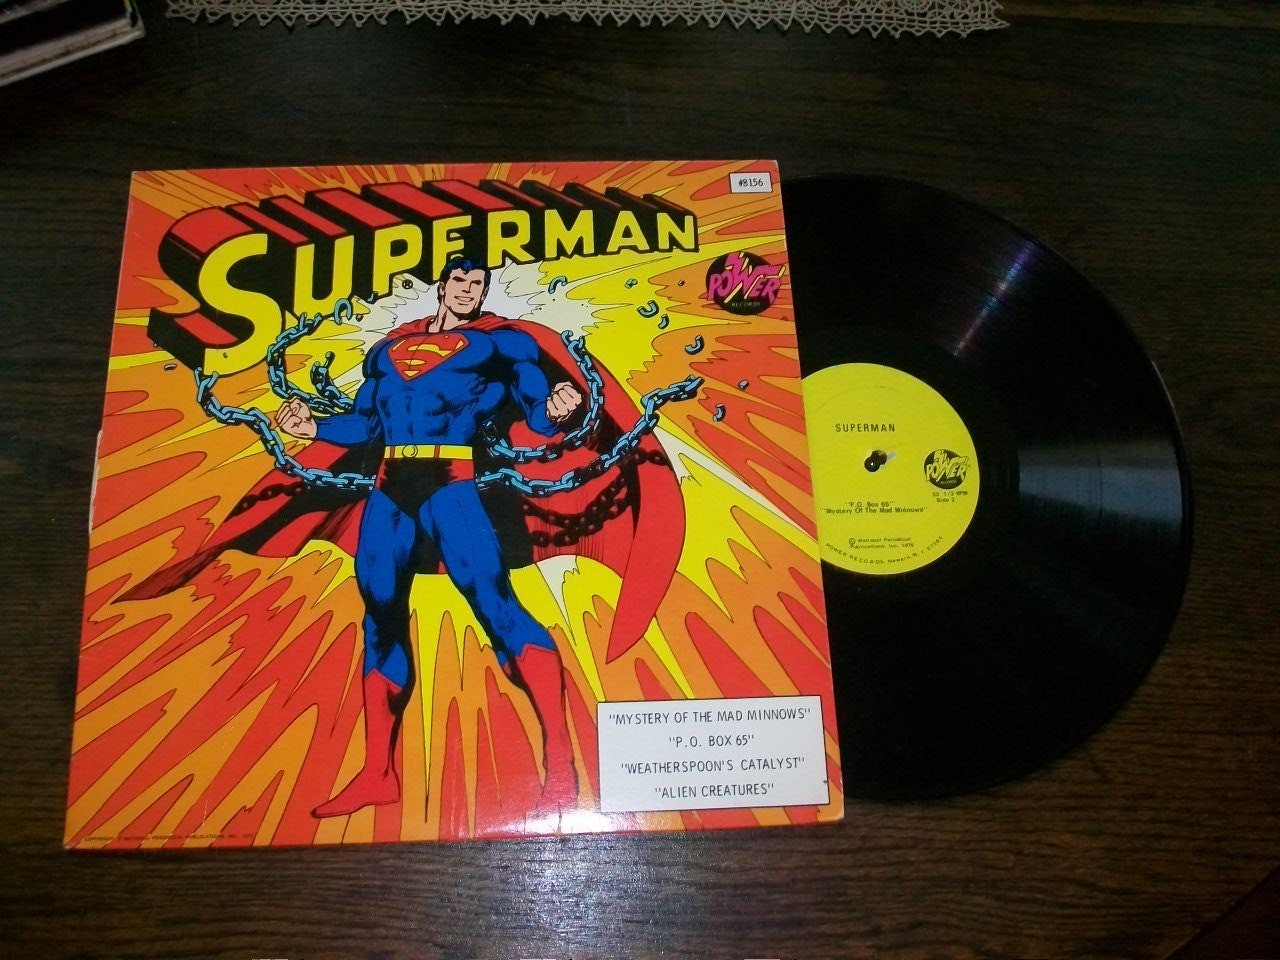 Superman Lp Record Album 8156 4 Stories From 1975